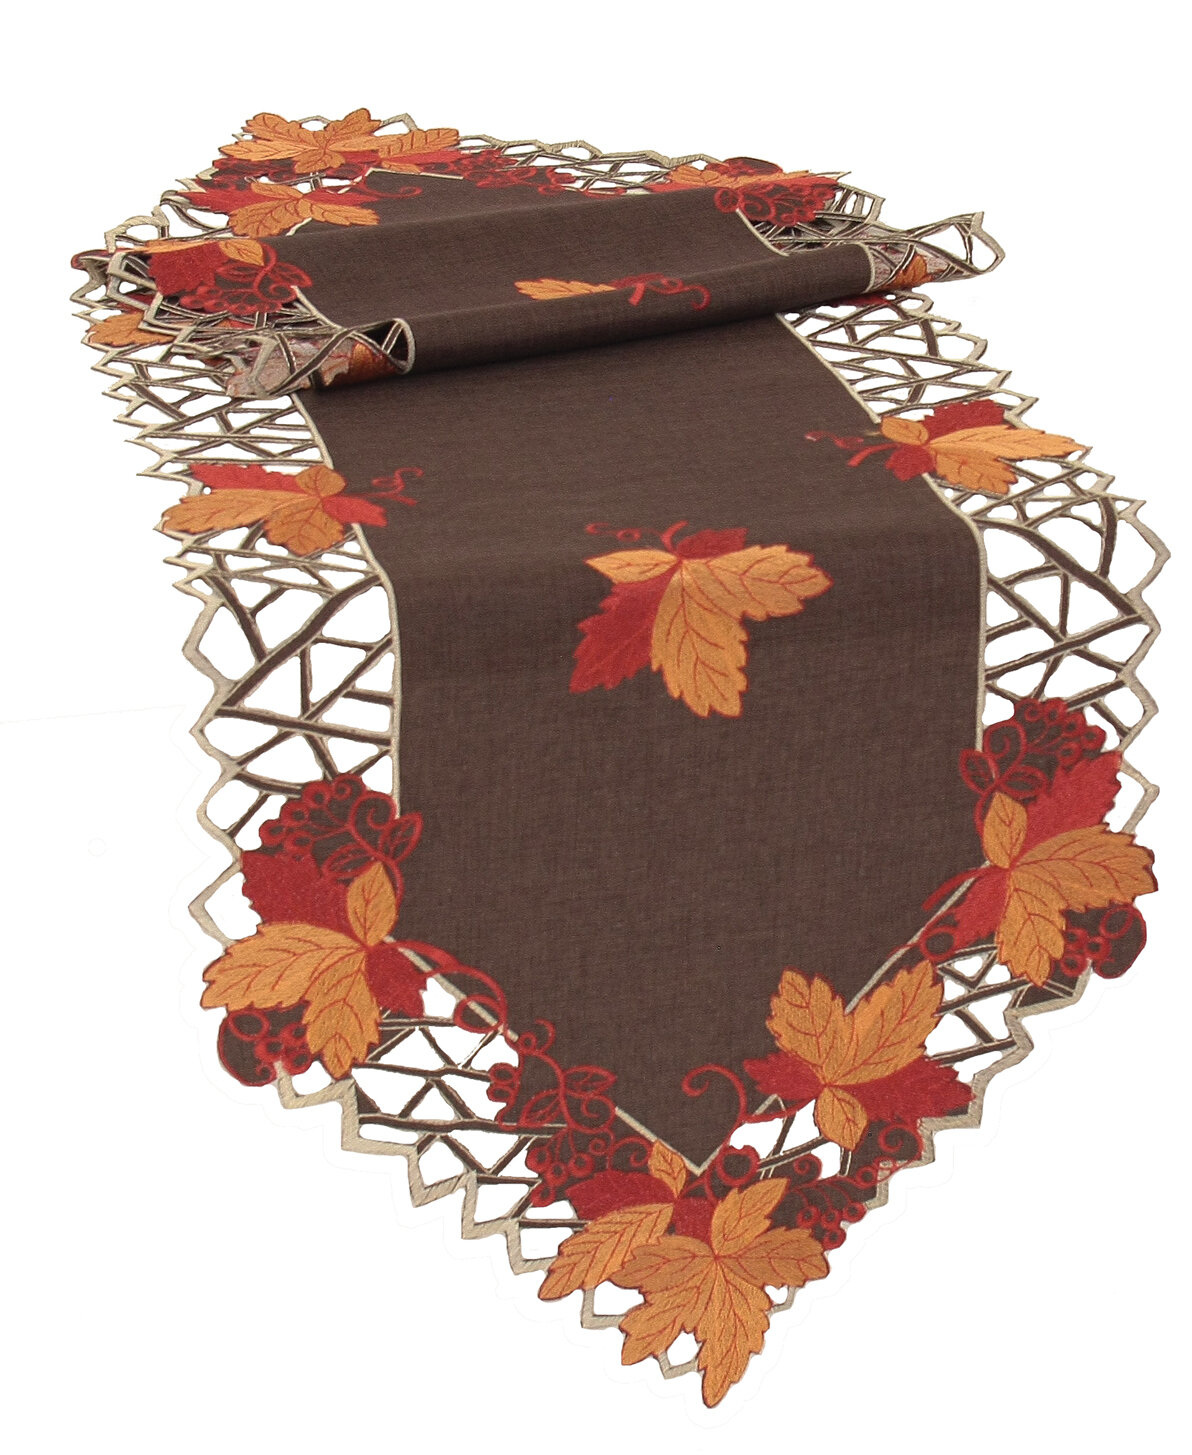 Delicieux Xia Home Fashions Harvest Hues Embroidered Cutwork Fall Table Runner U0026  Reviews | Wayfair